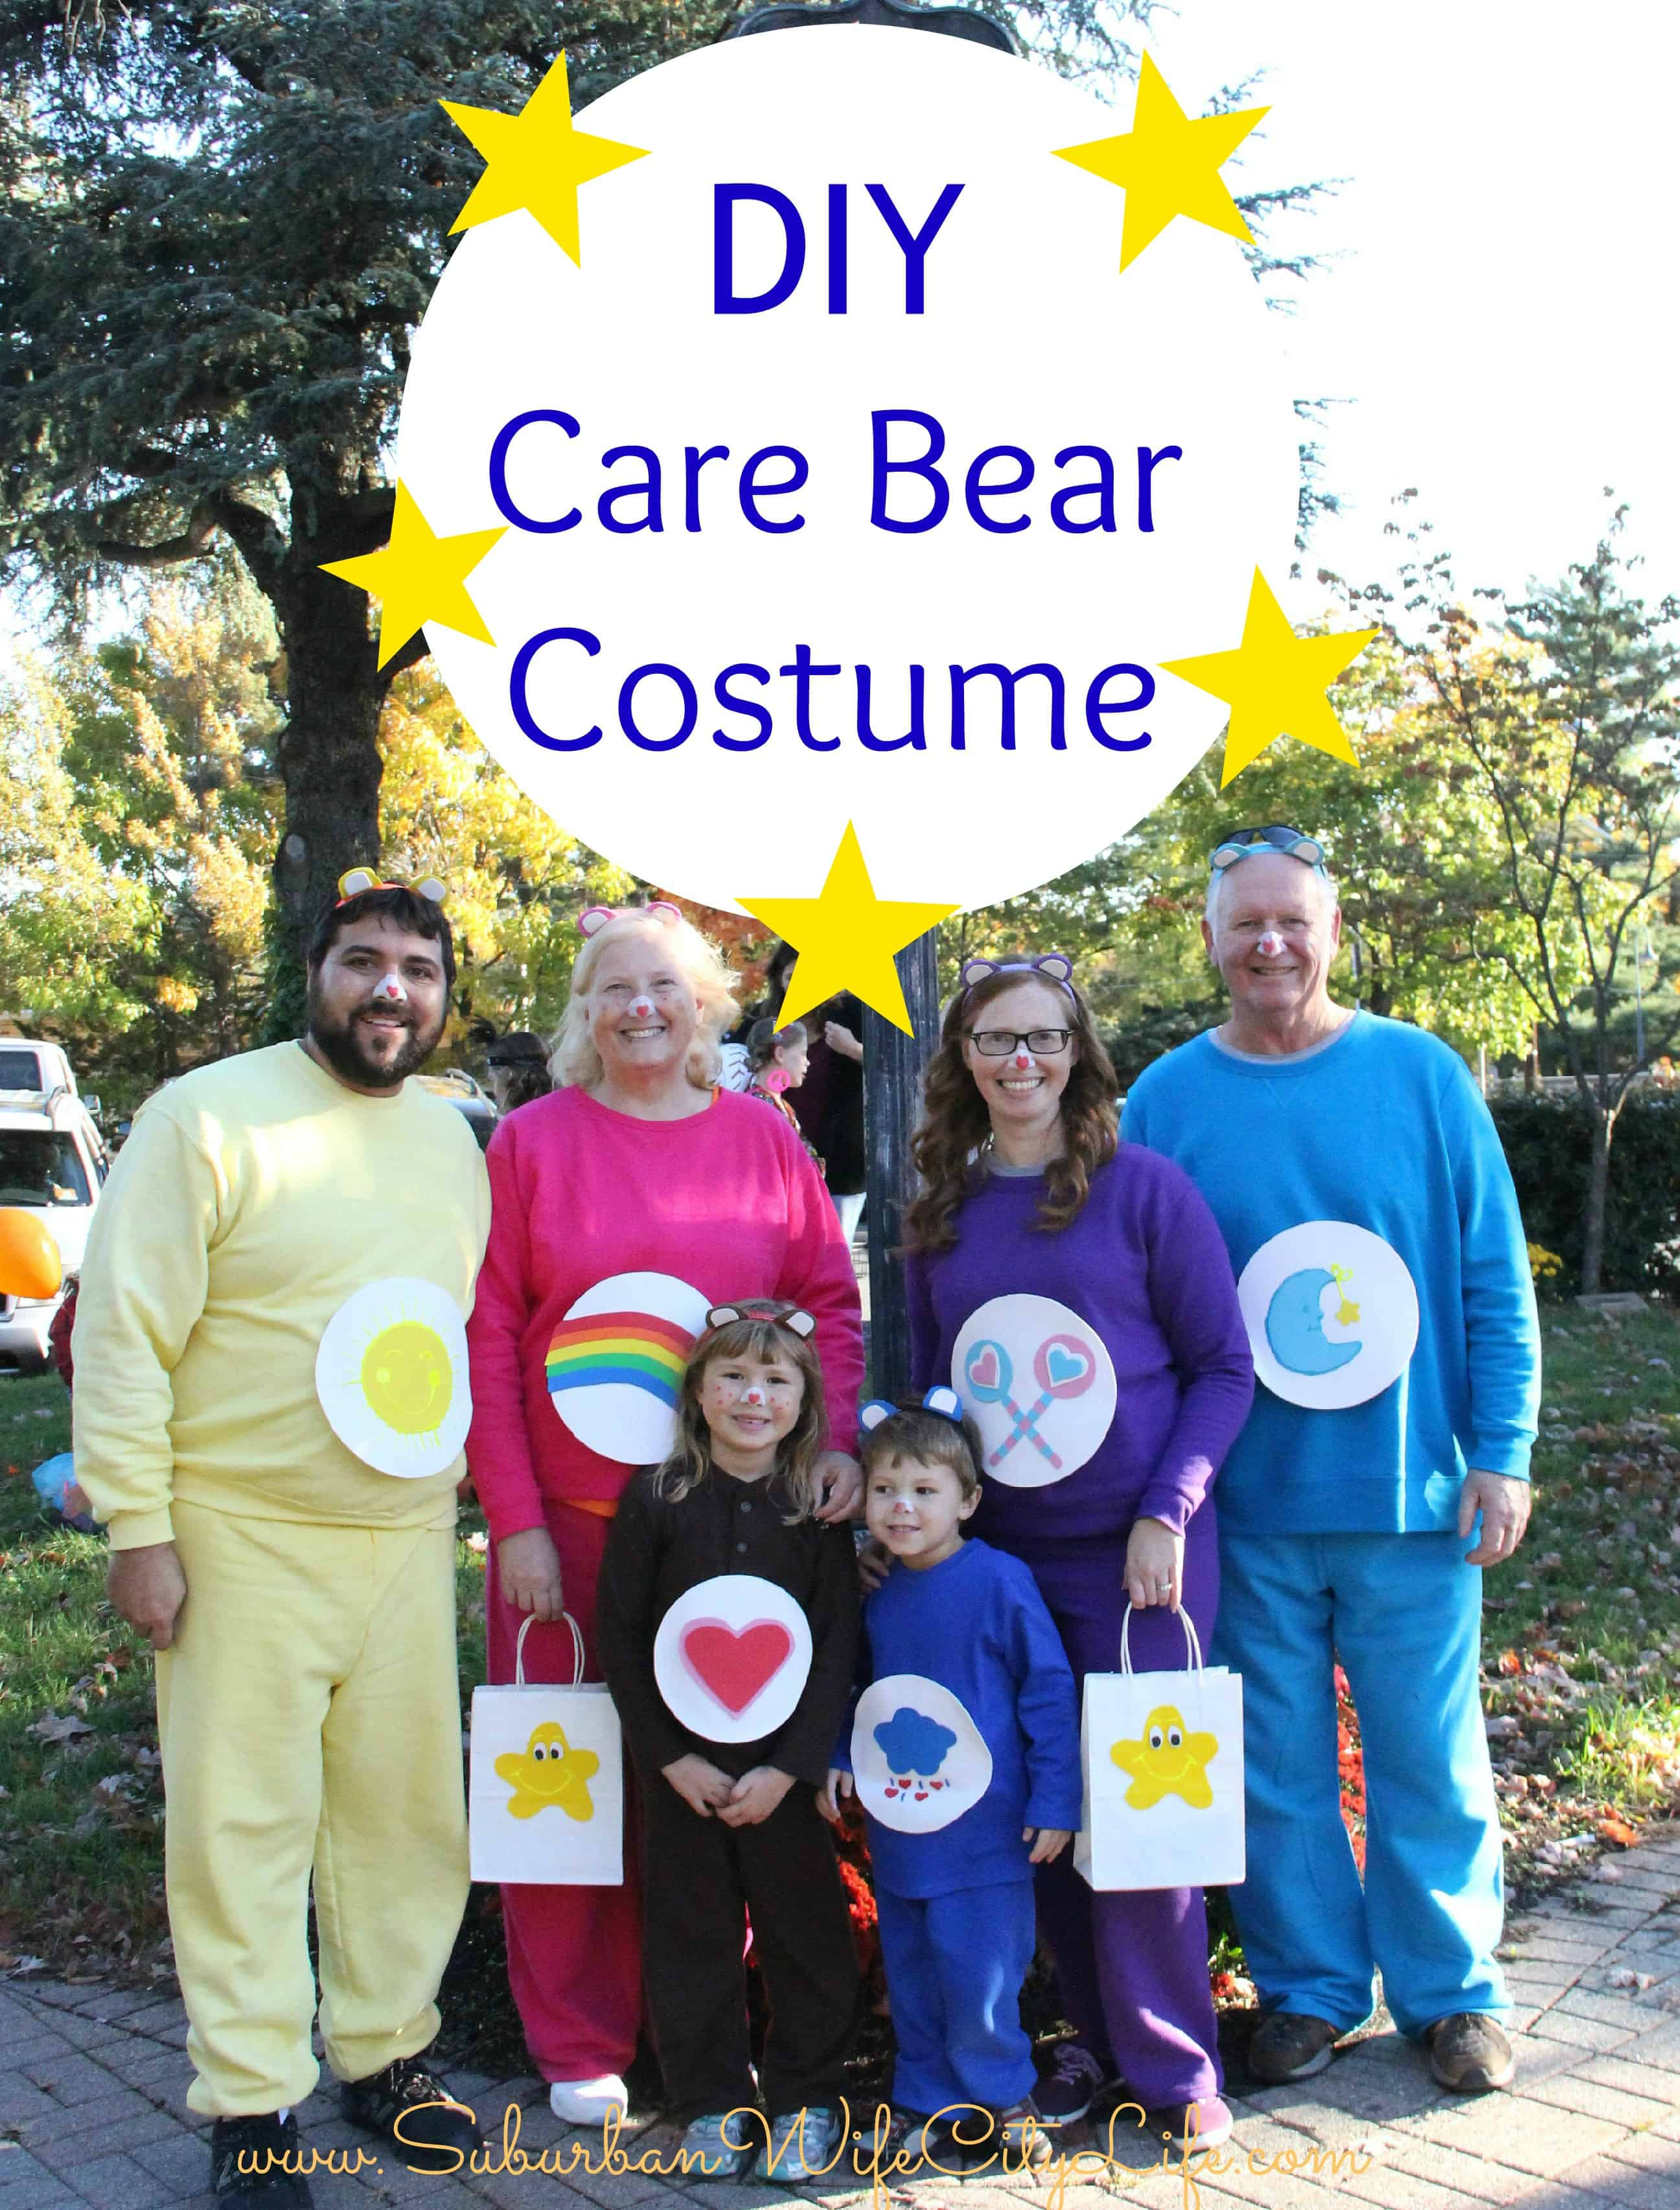 Care Bear Family Costumes  sc 1 st  Suburban Wife City Life & DIY Care Bear Costume - Suburban Wife City Life